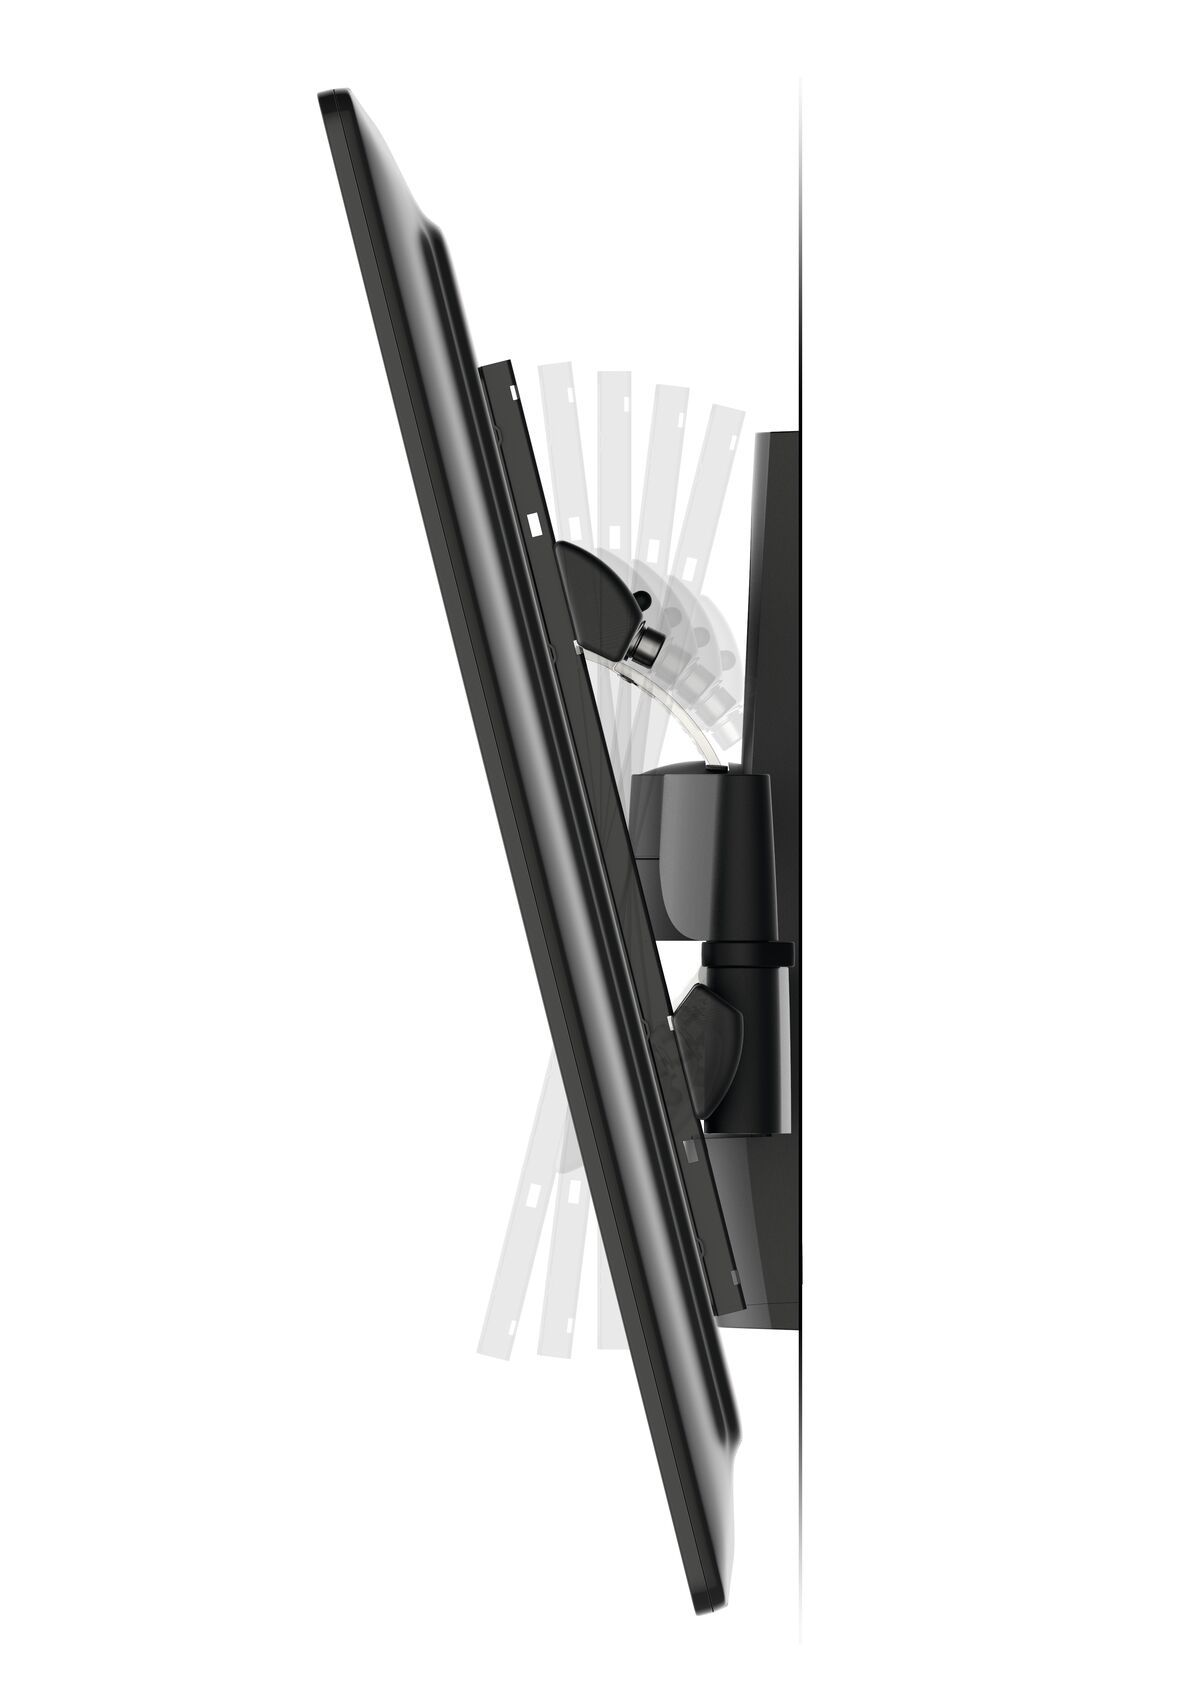 Vogel's WALL 2250 Full-Motion TV Wall Mount - Suitable for 32 up to 55 inch TVs - Forward and turning motion (up to 120°) - Tilt up to 15° - Detail